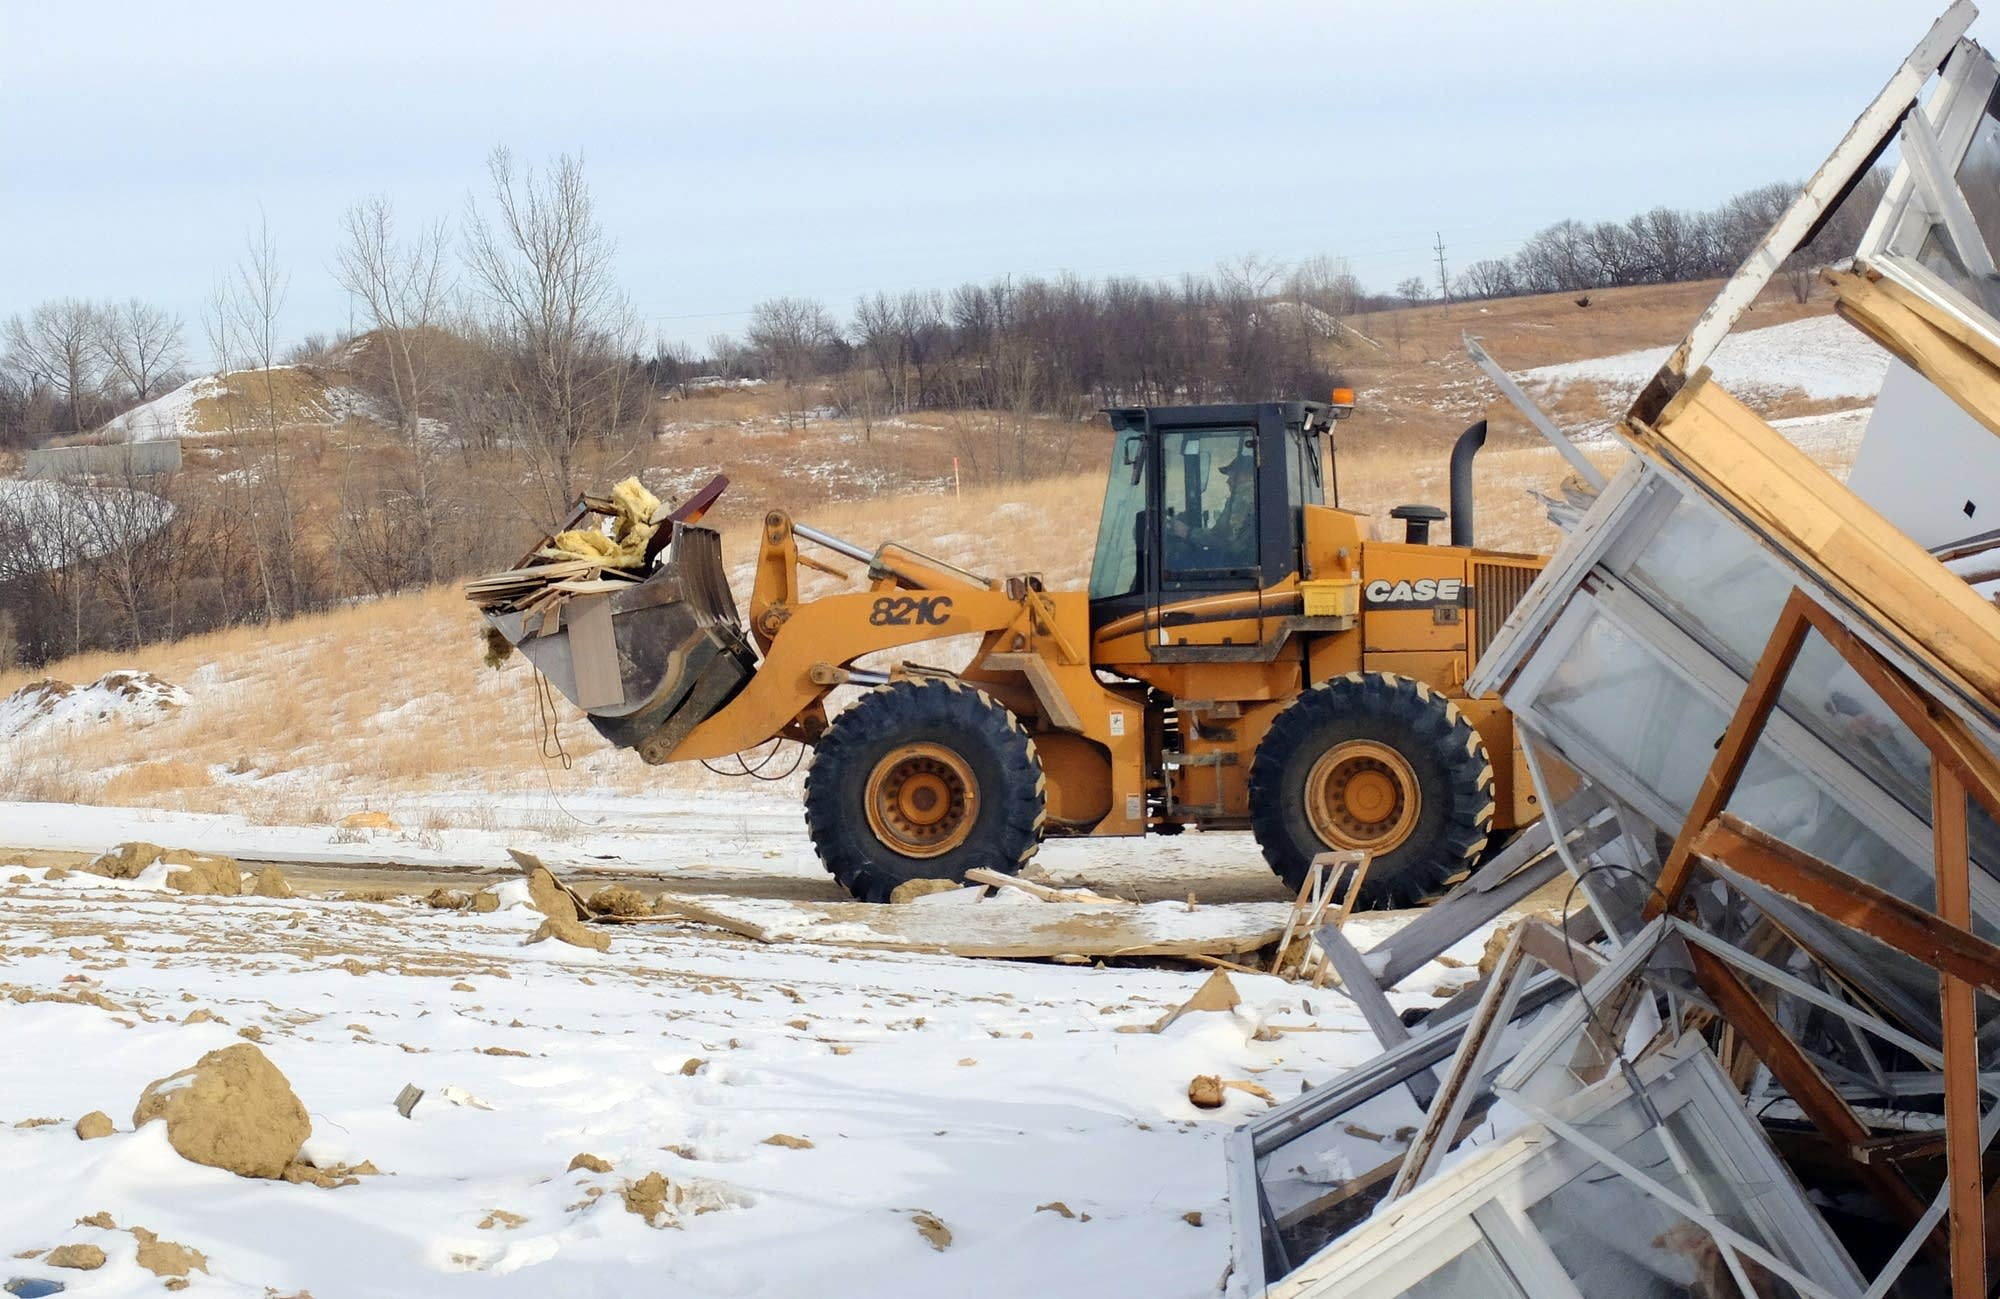 A worker moves debris with a loader at the Fergus Falls landfill.